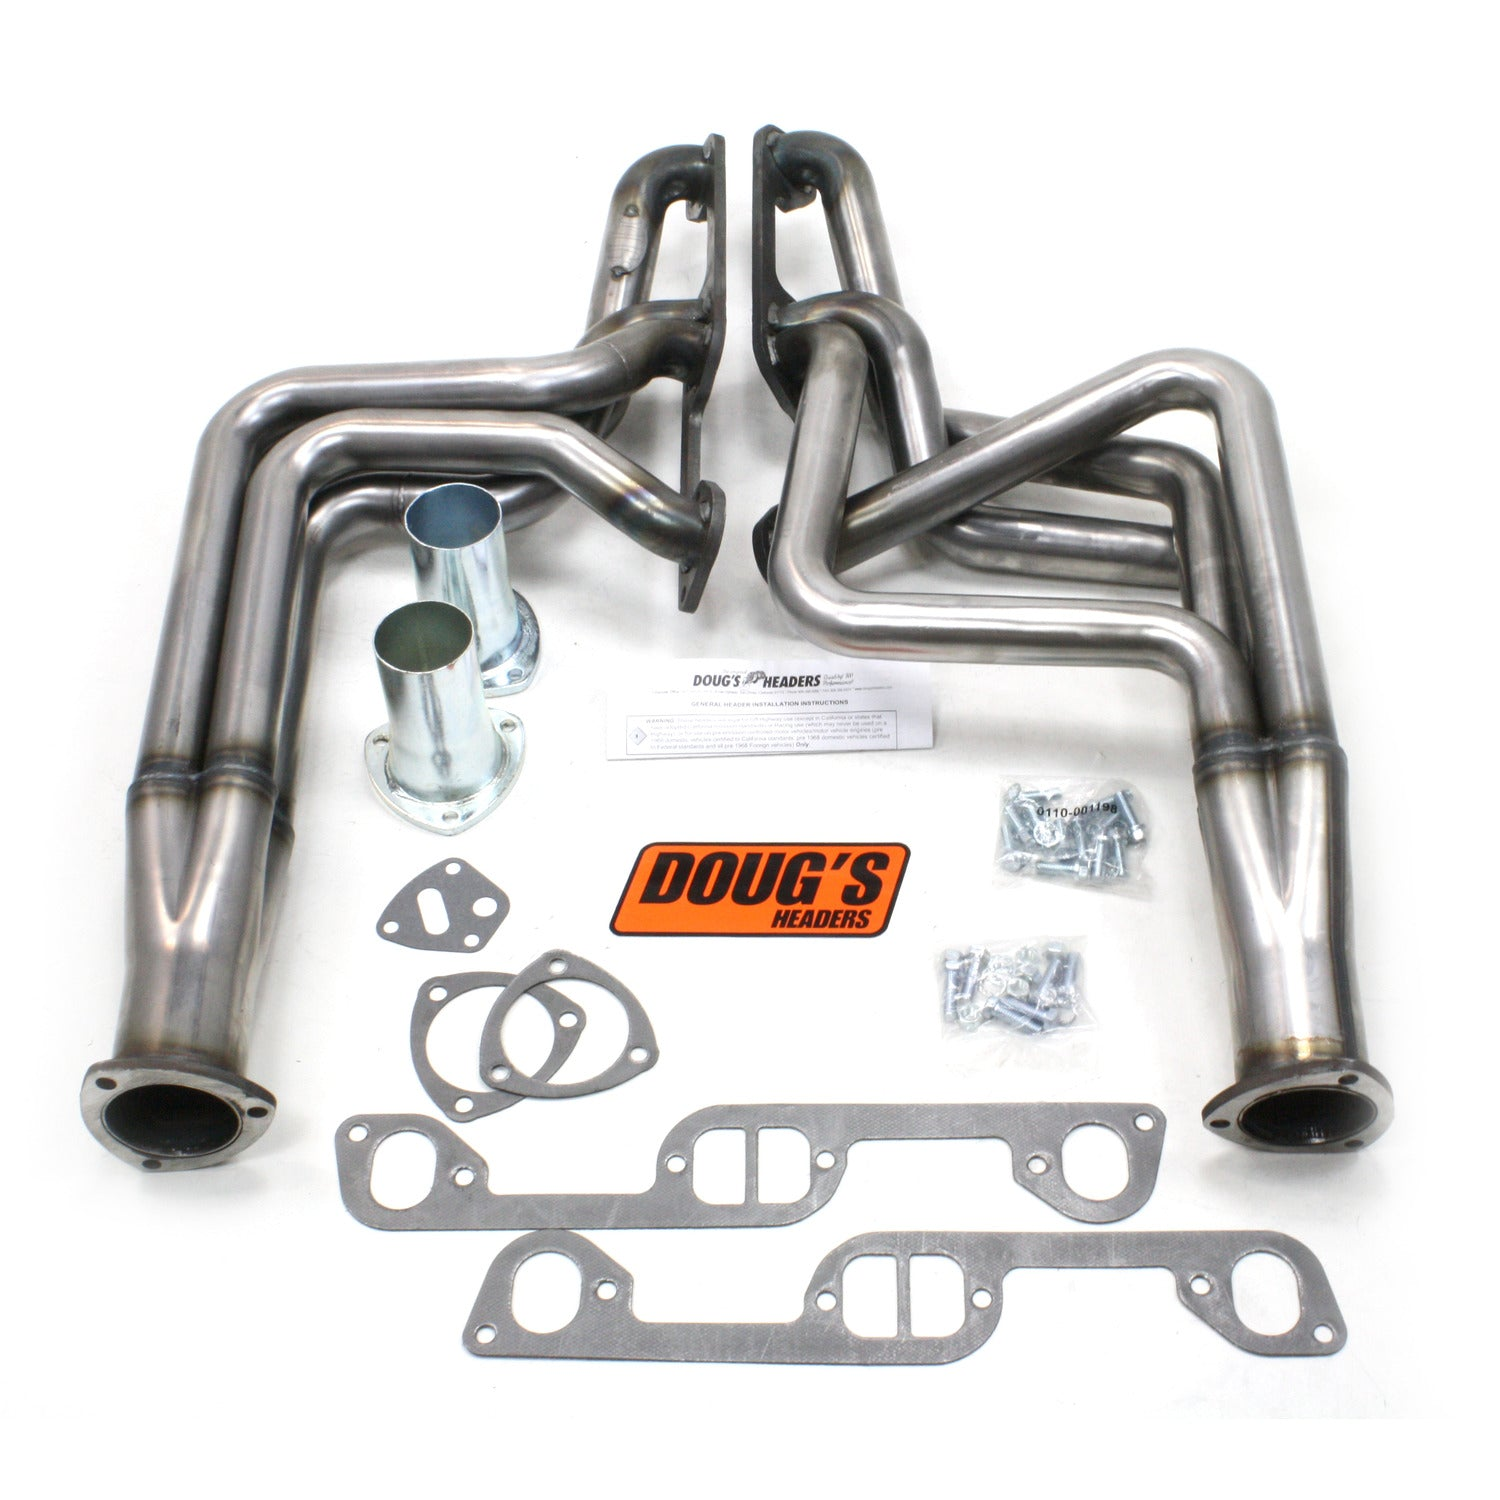 "Doug's Headers D570-R 1 3/4"" 4-Tube Full Length Header Pontiac Firebird 326-455 70-81 Raw Steel"